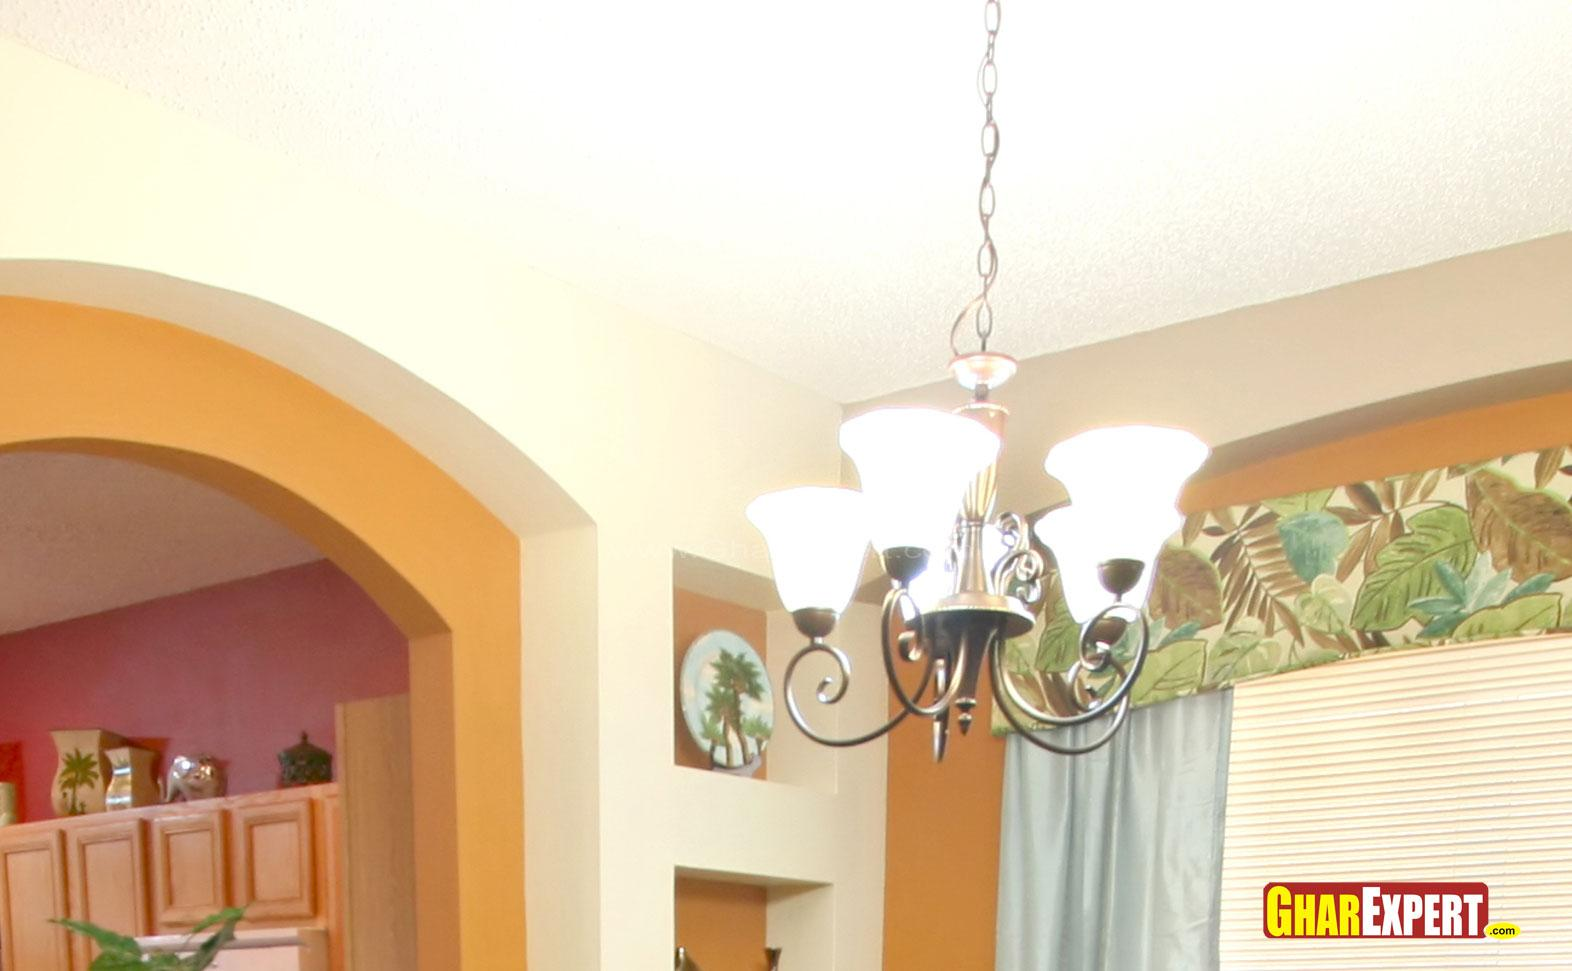 Small size chandelier